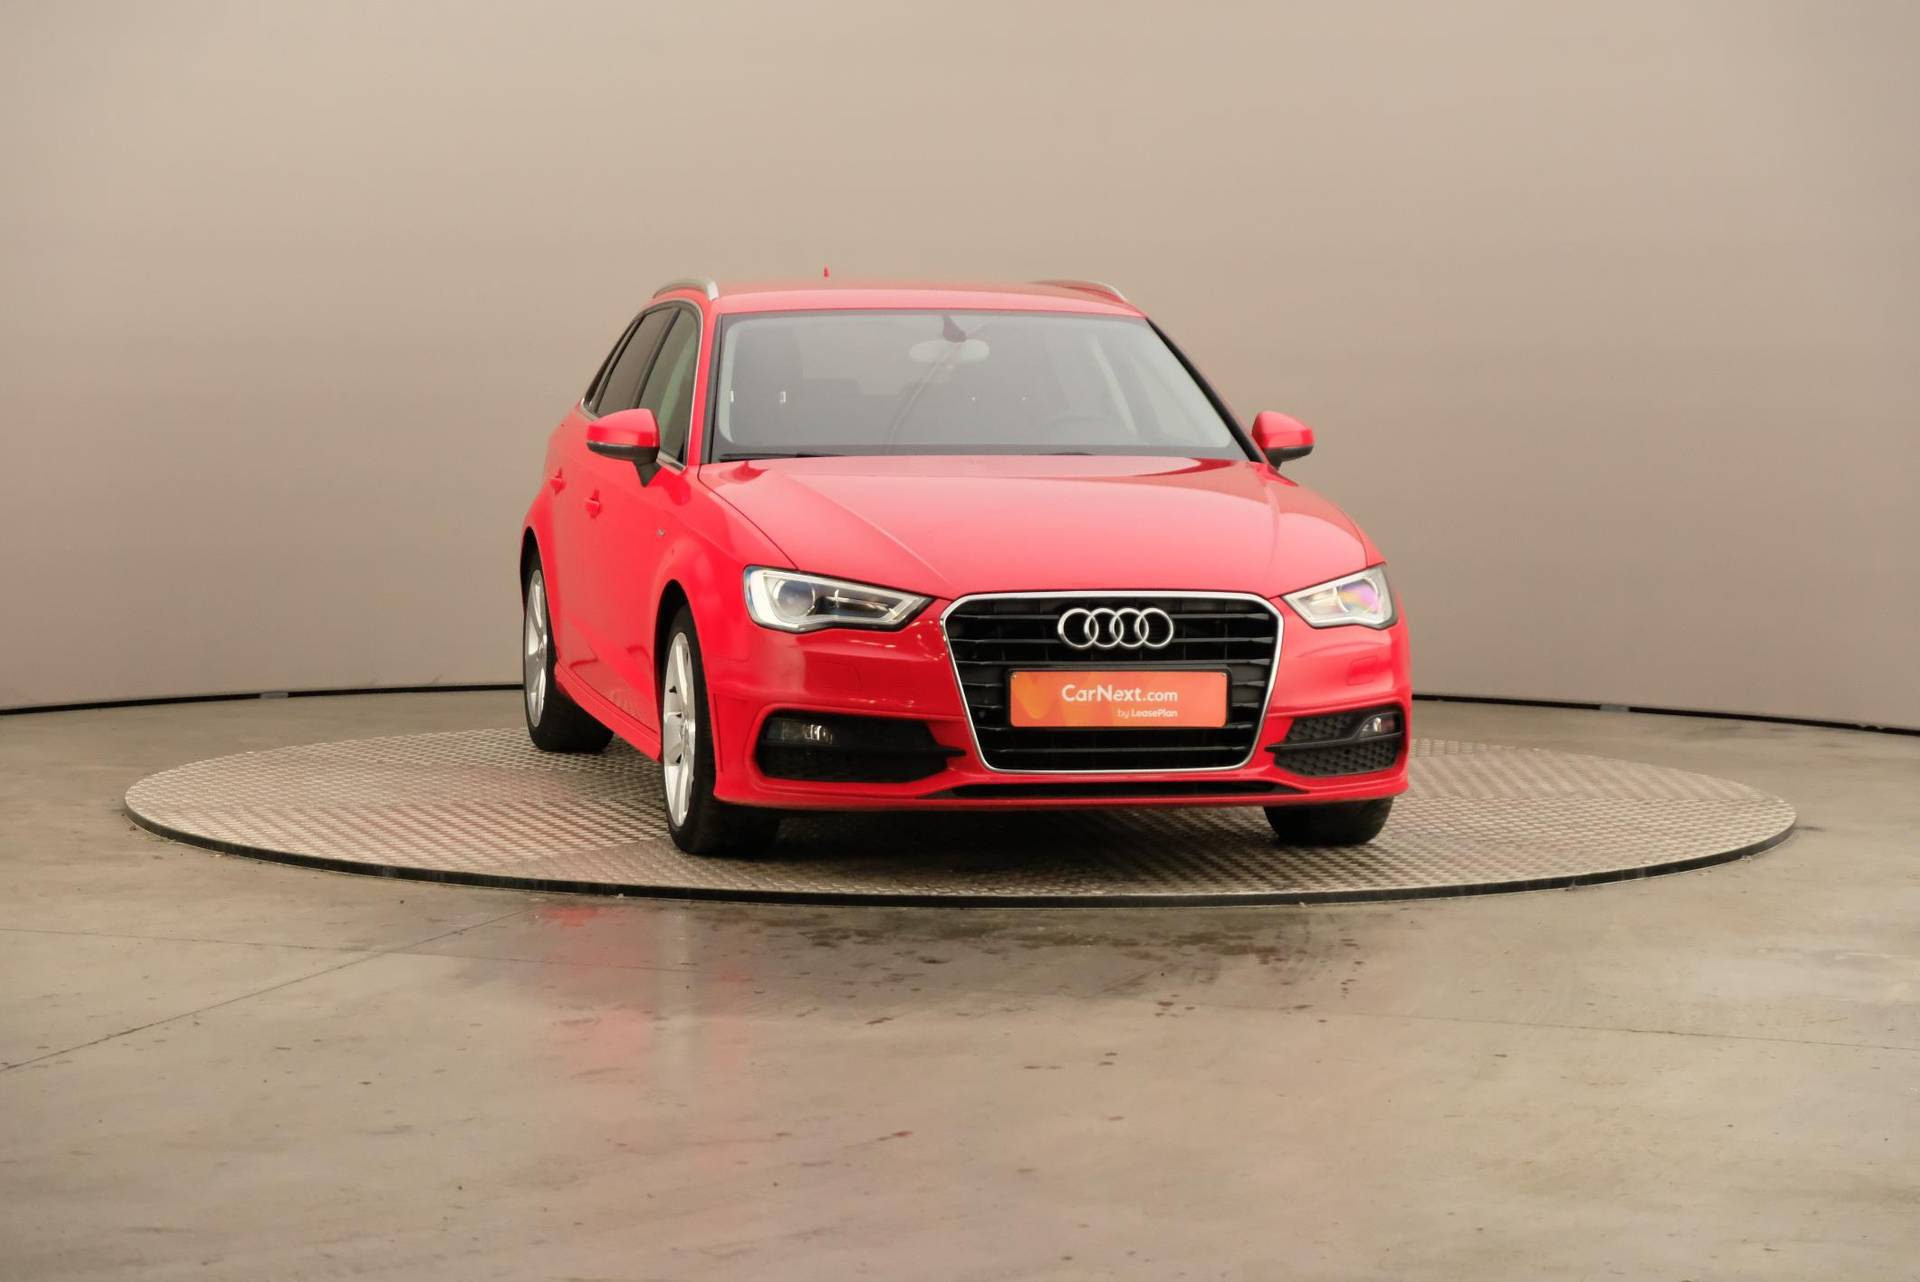 Audi A3 1.6 TDi Ambition PACK SPORT DESIGN XENON GPS PDC CRUISE CONTROL, 360-image30